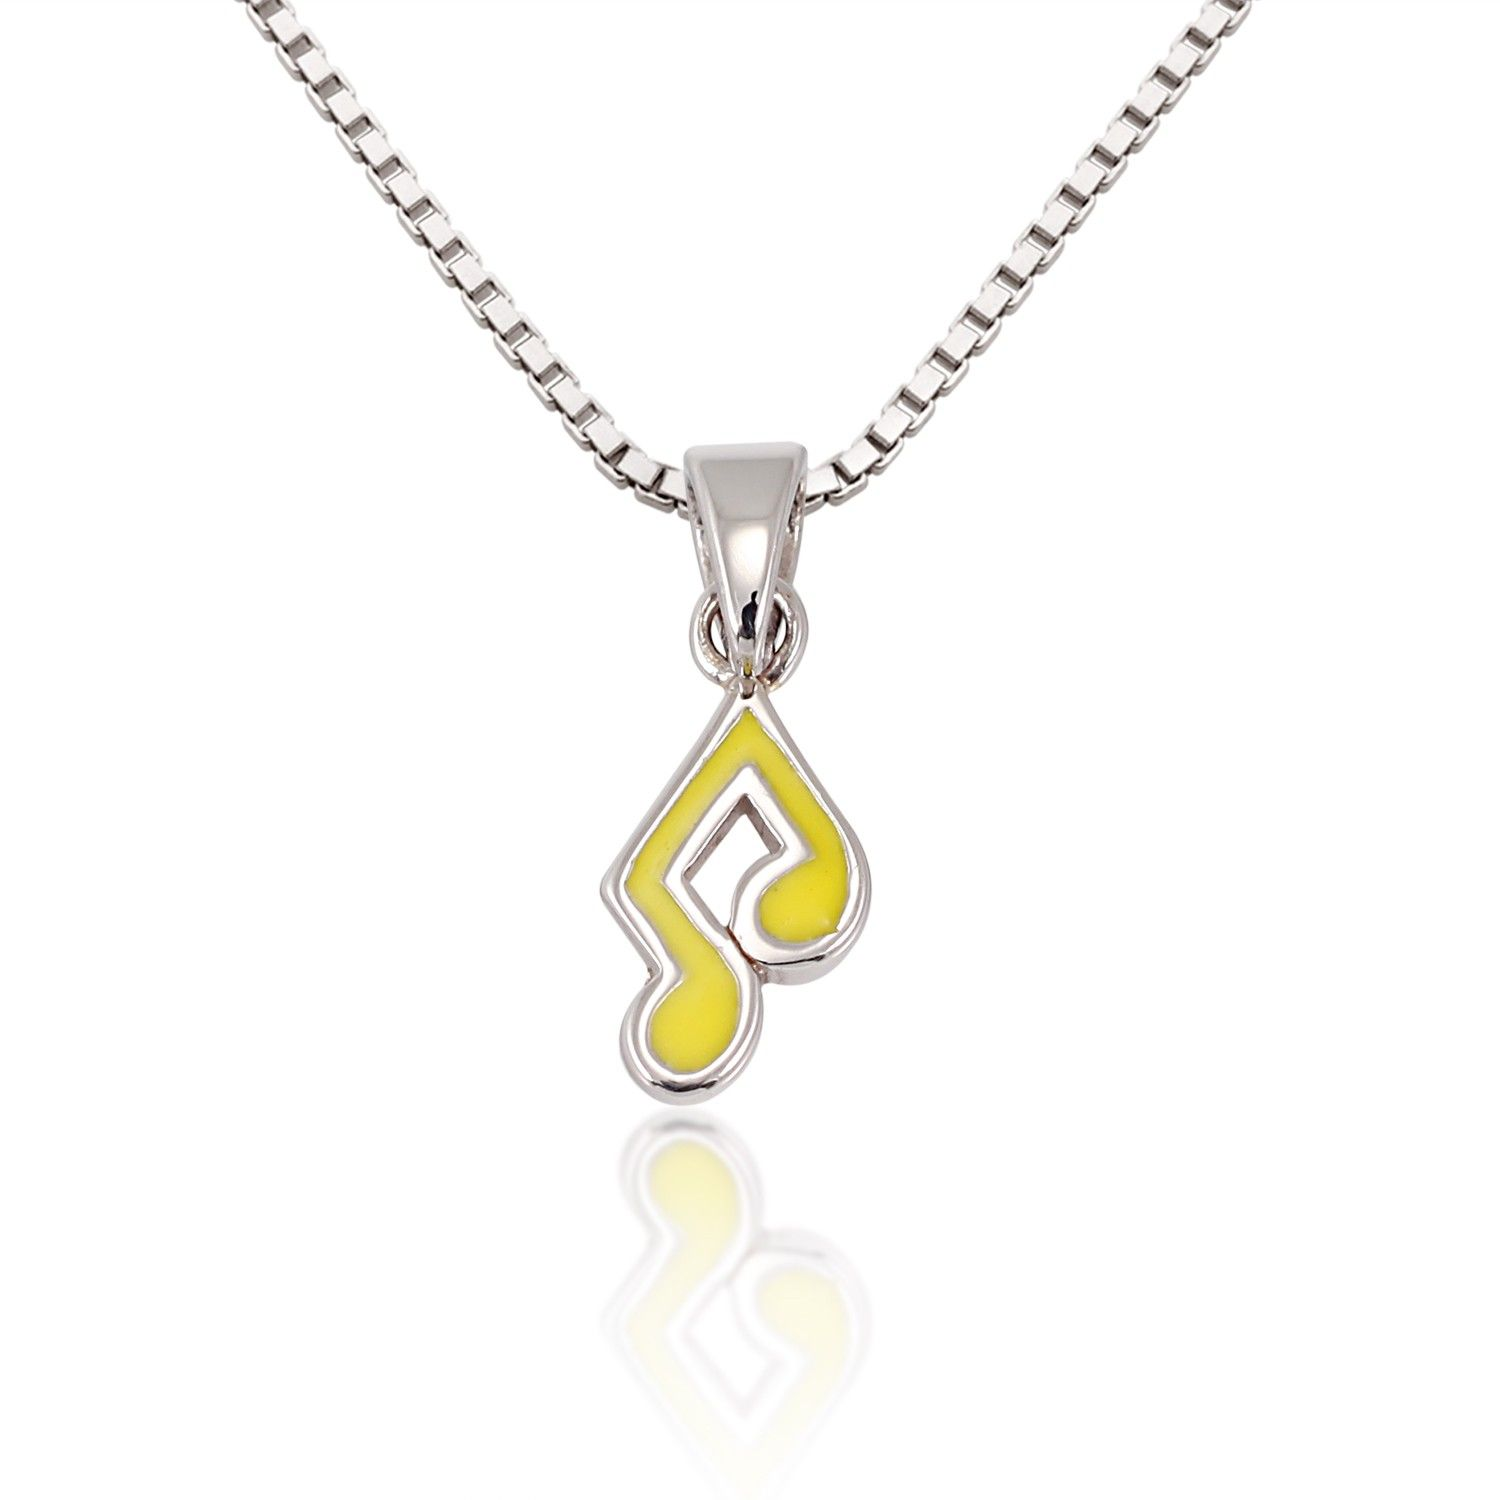 Children's 925 Sterling Silver Yellow Music Note Melody Pendant Necklace, 13-15…